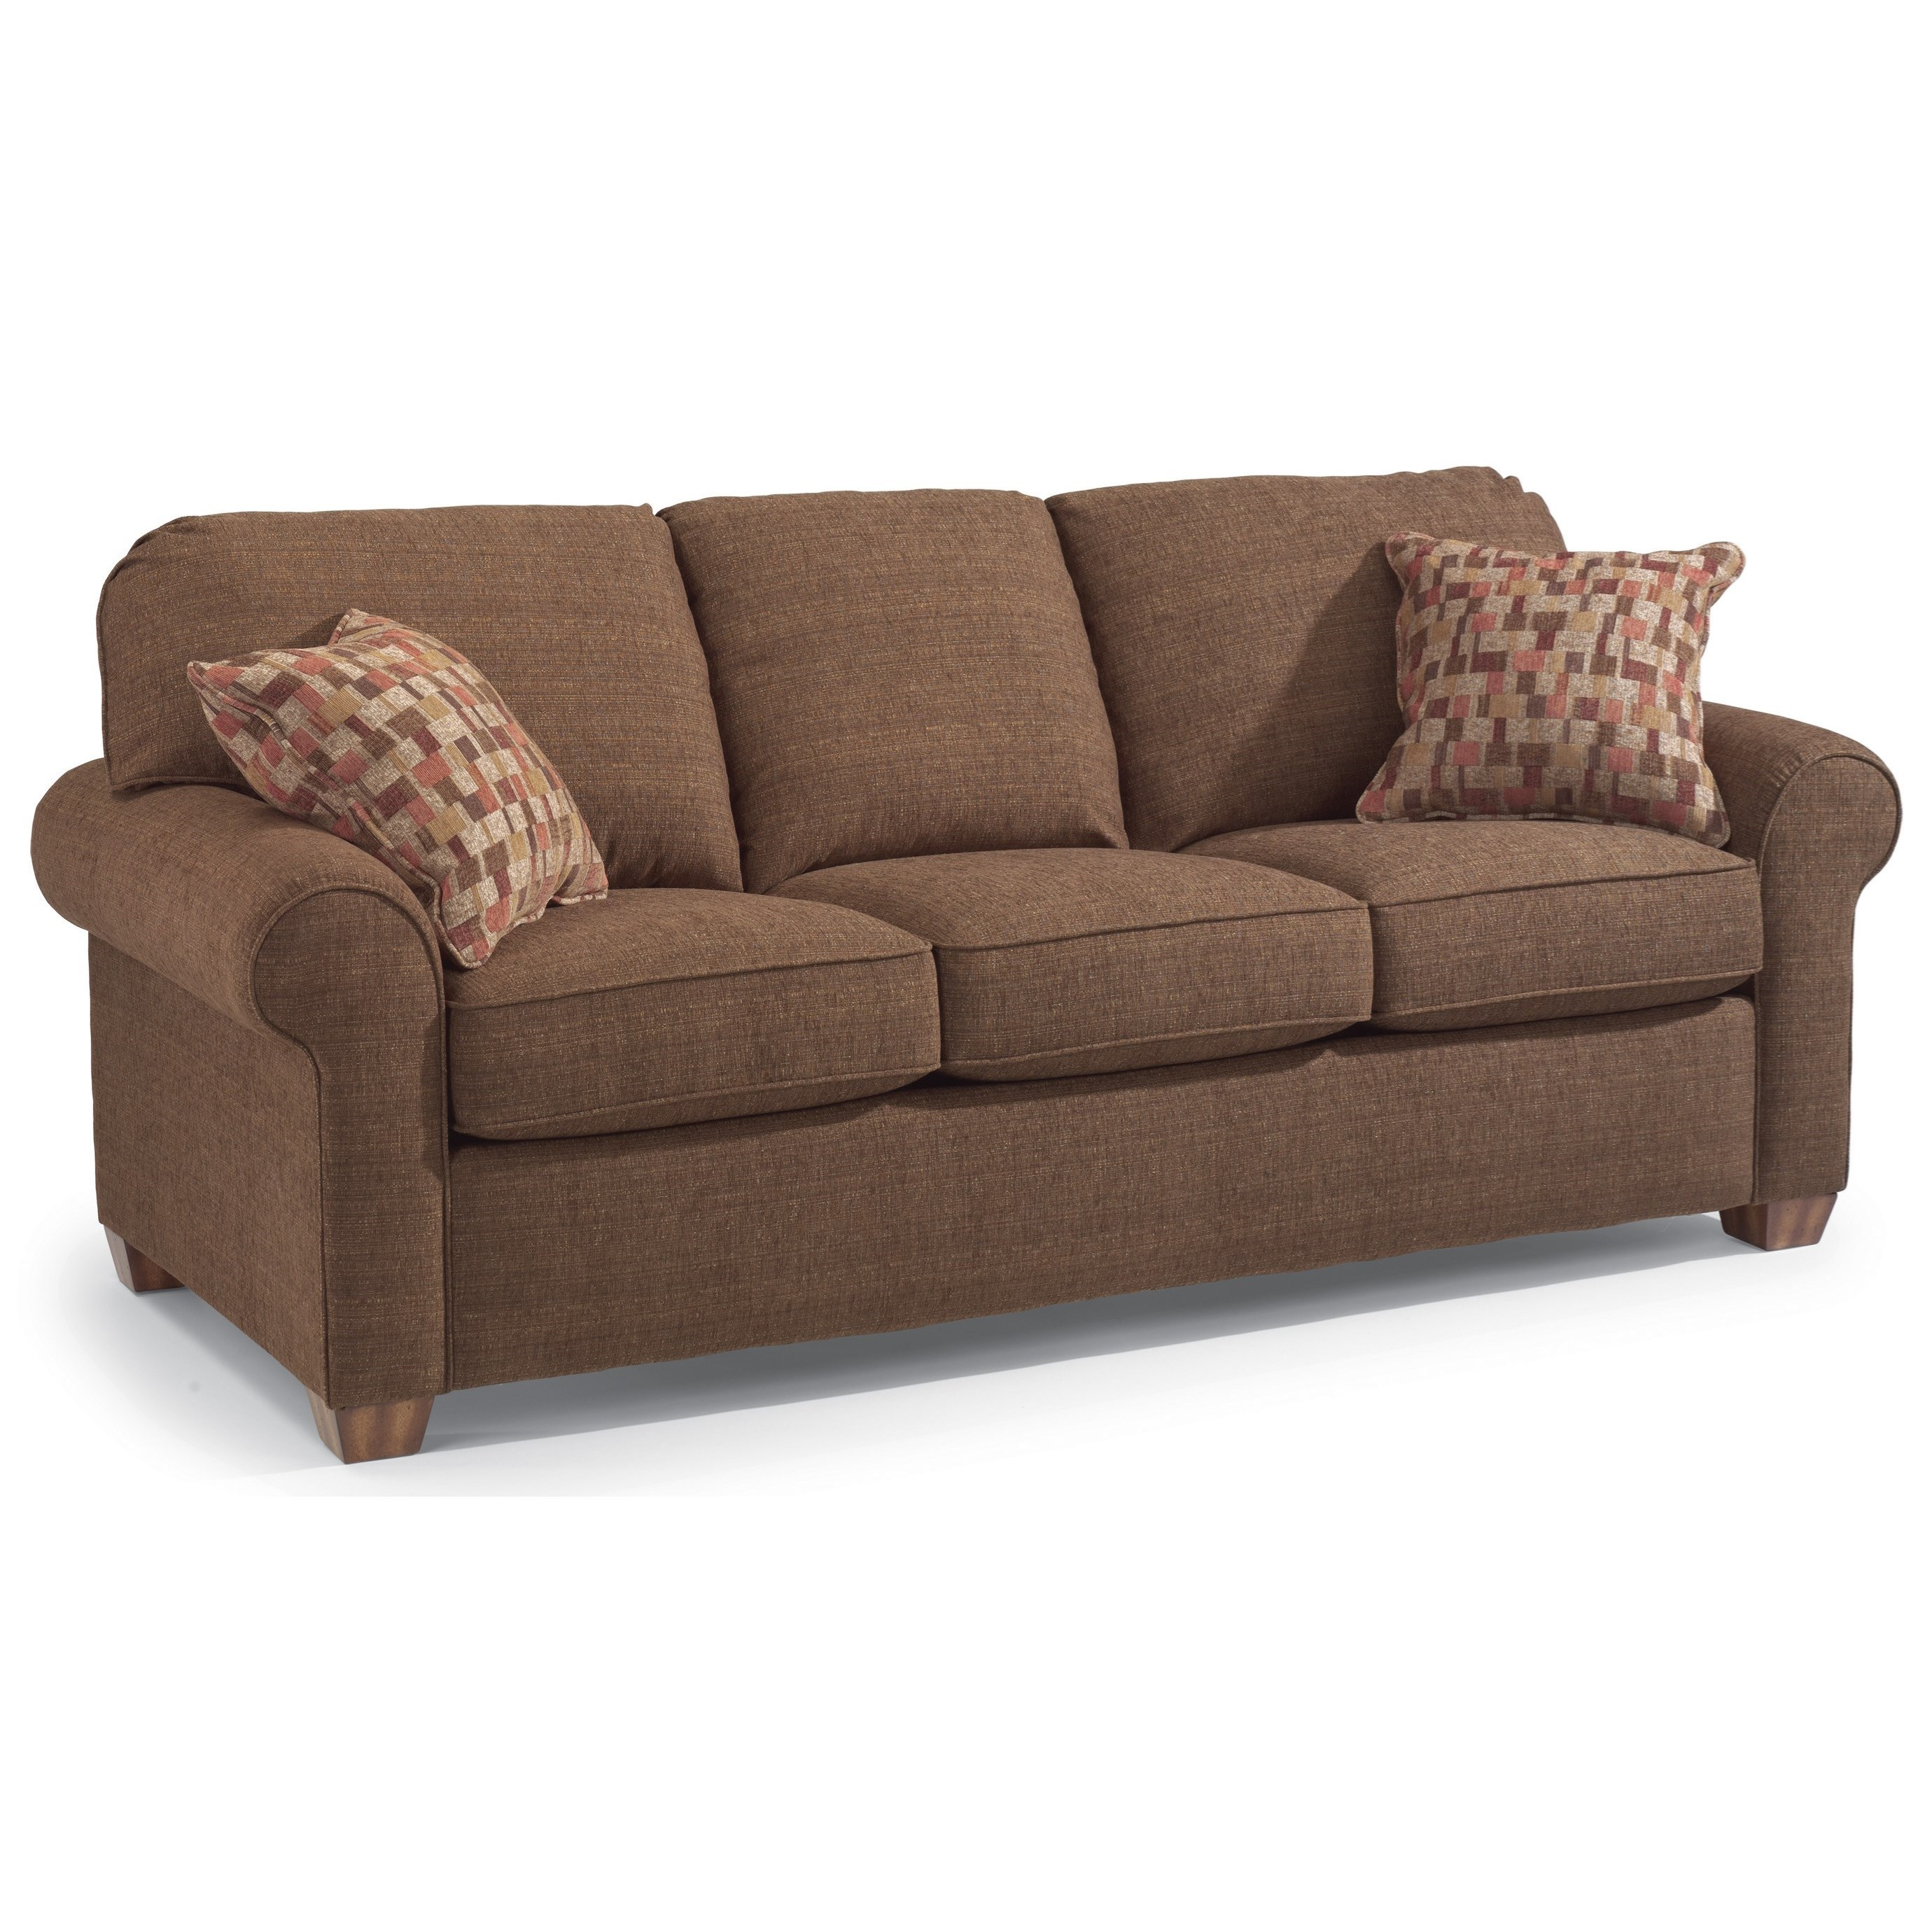 Attrayant Flexsteel Thornton Stationary Sofa ...